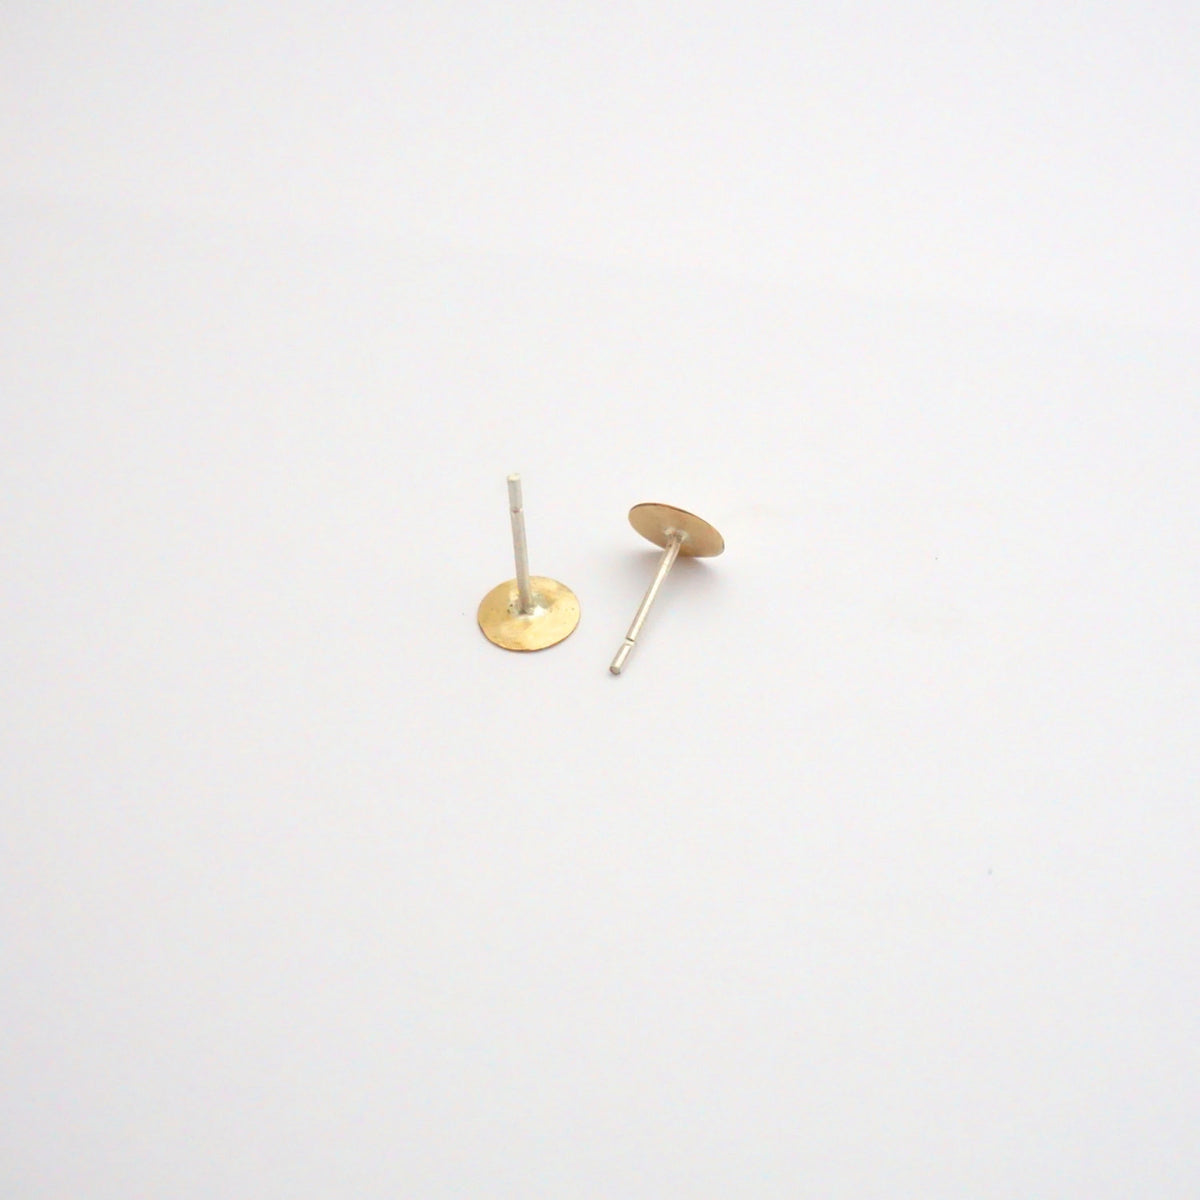 Contemporary Styled, Hand-Made Flat Circular Gold Colored Brass Studs - 0121 - Virginia Wynne Designs